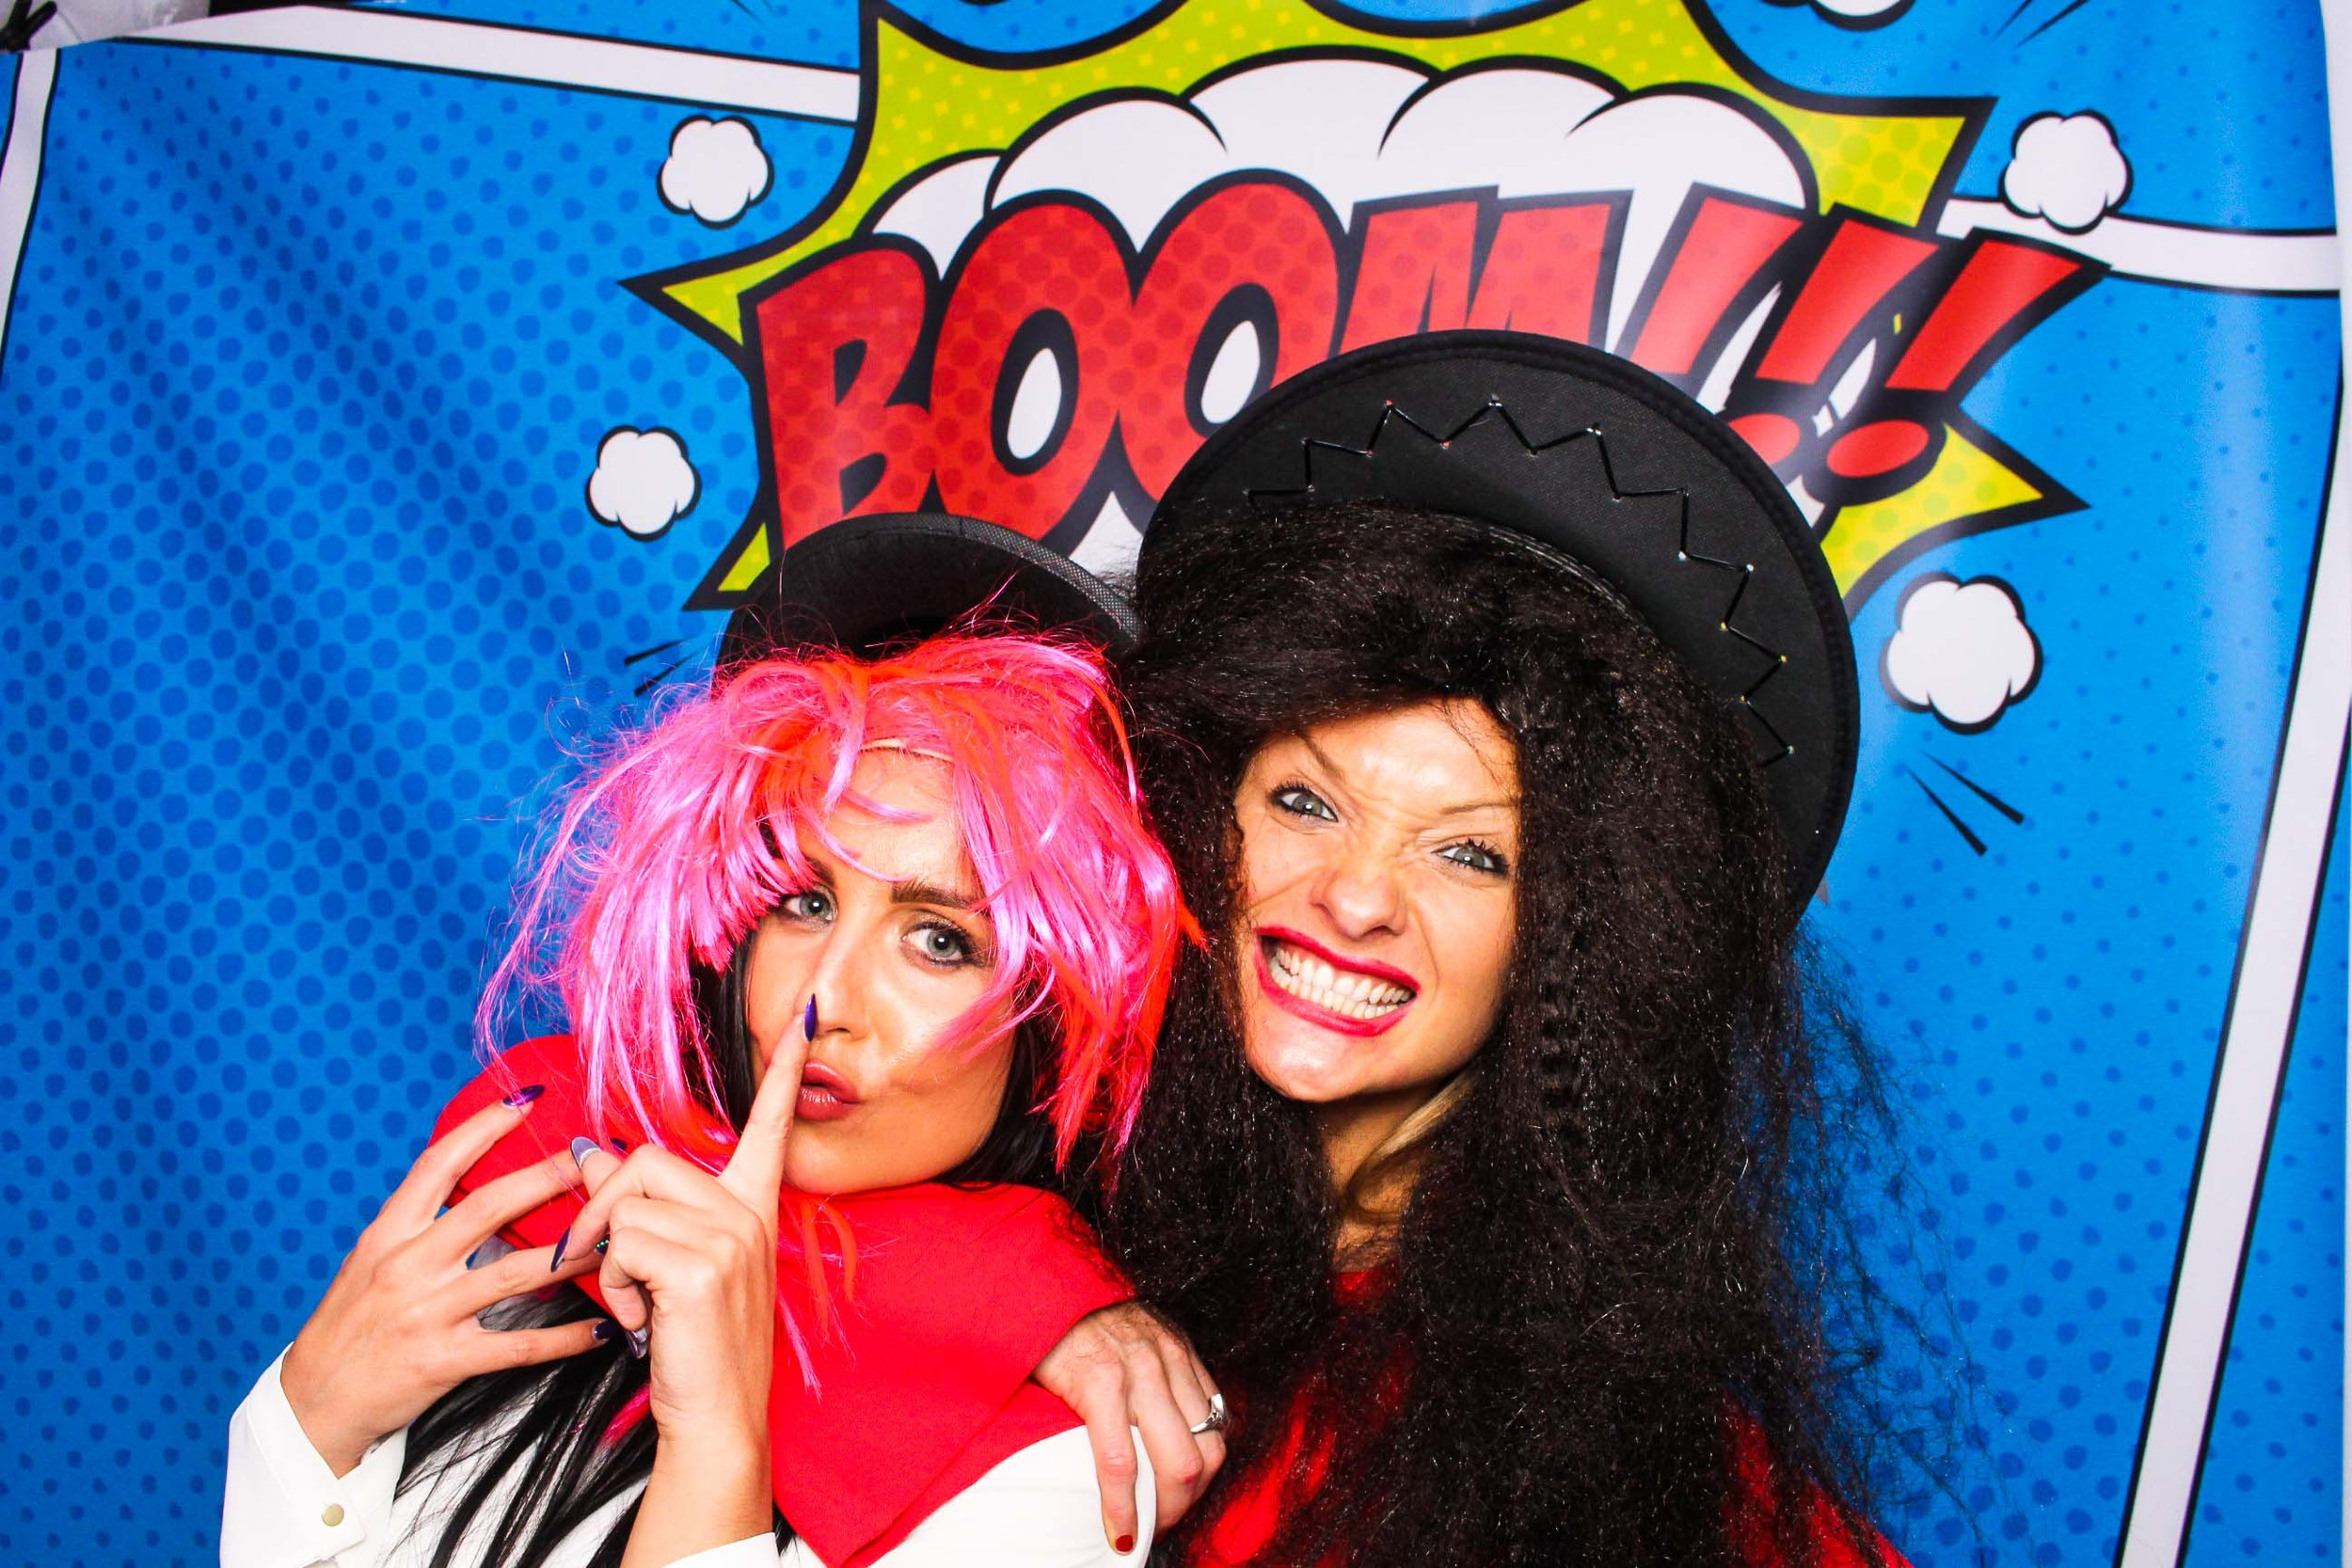 Fotoauto Photo Booth Hire - Shop Direct-328.jpg